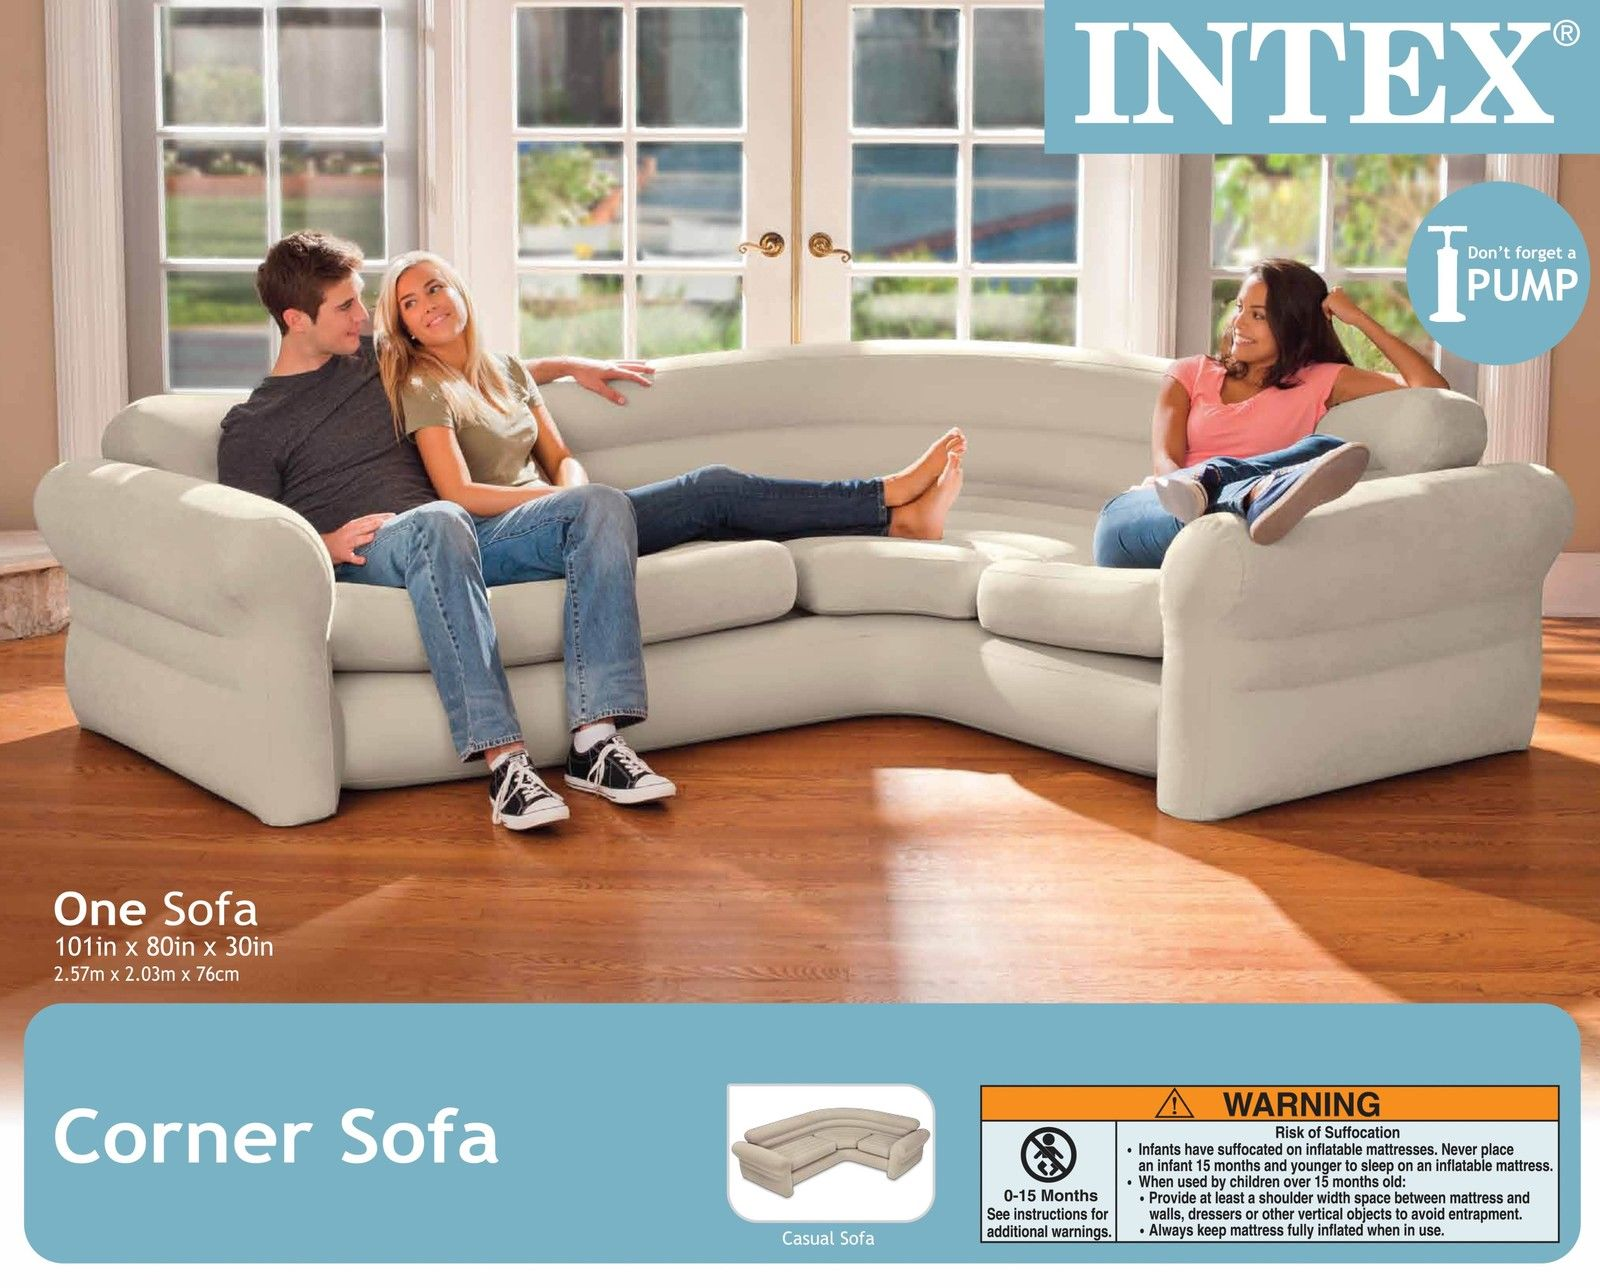 Big Inflatable Couch Intex Inflatable Corner Couch